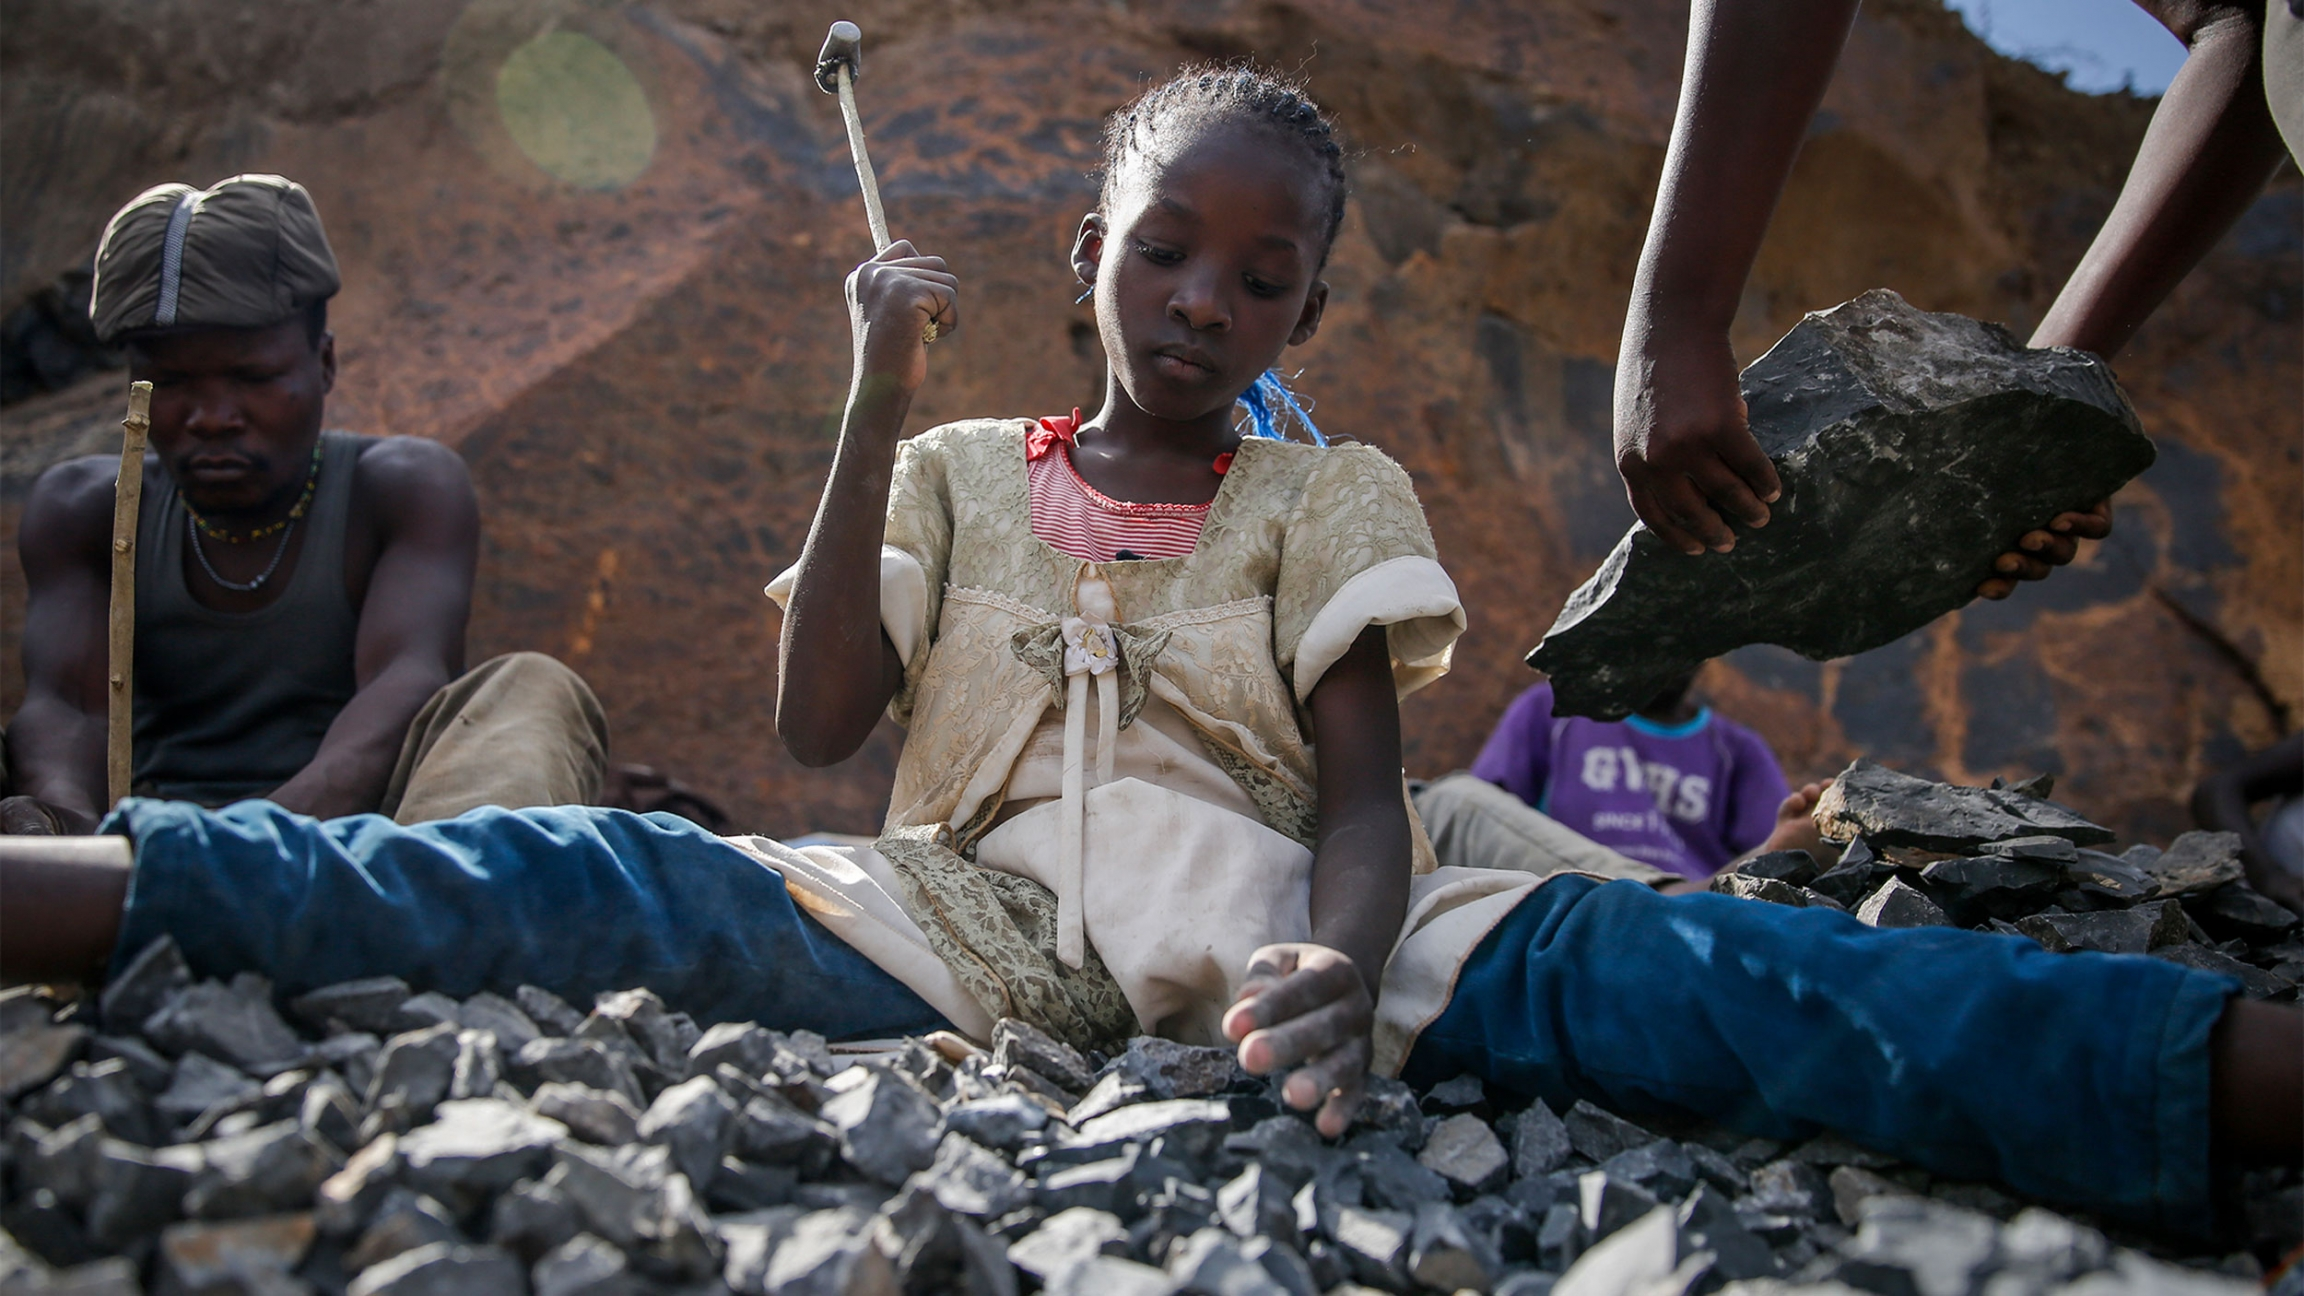 Young girl holds up hammer as she uses it to break rocks in front of her